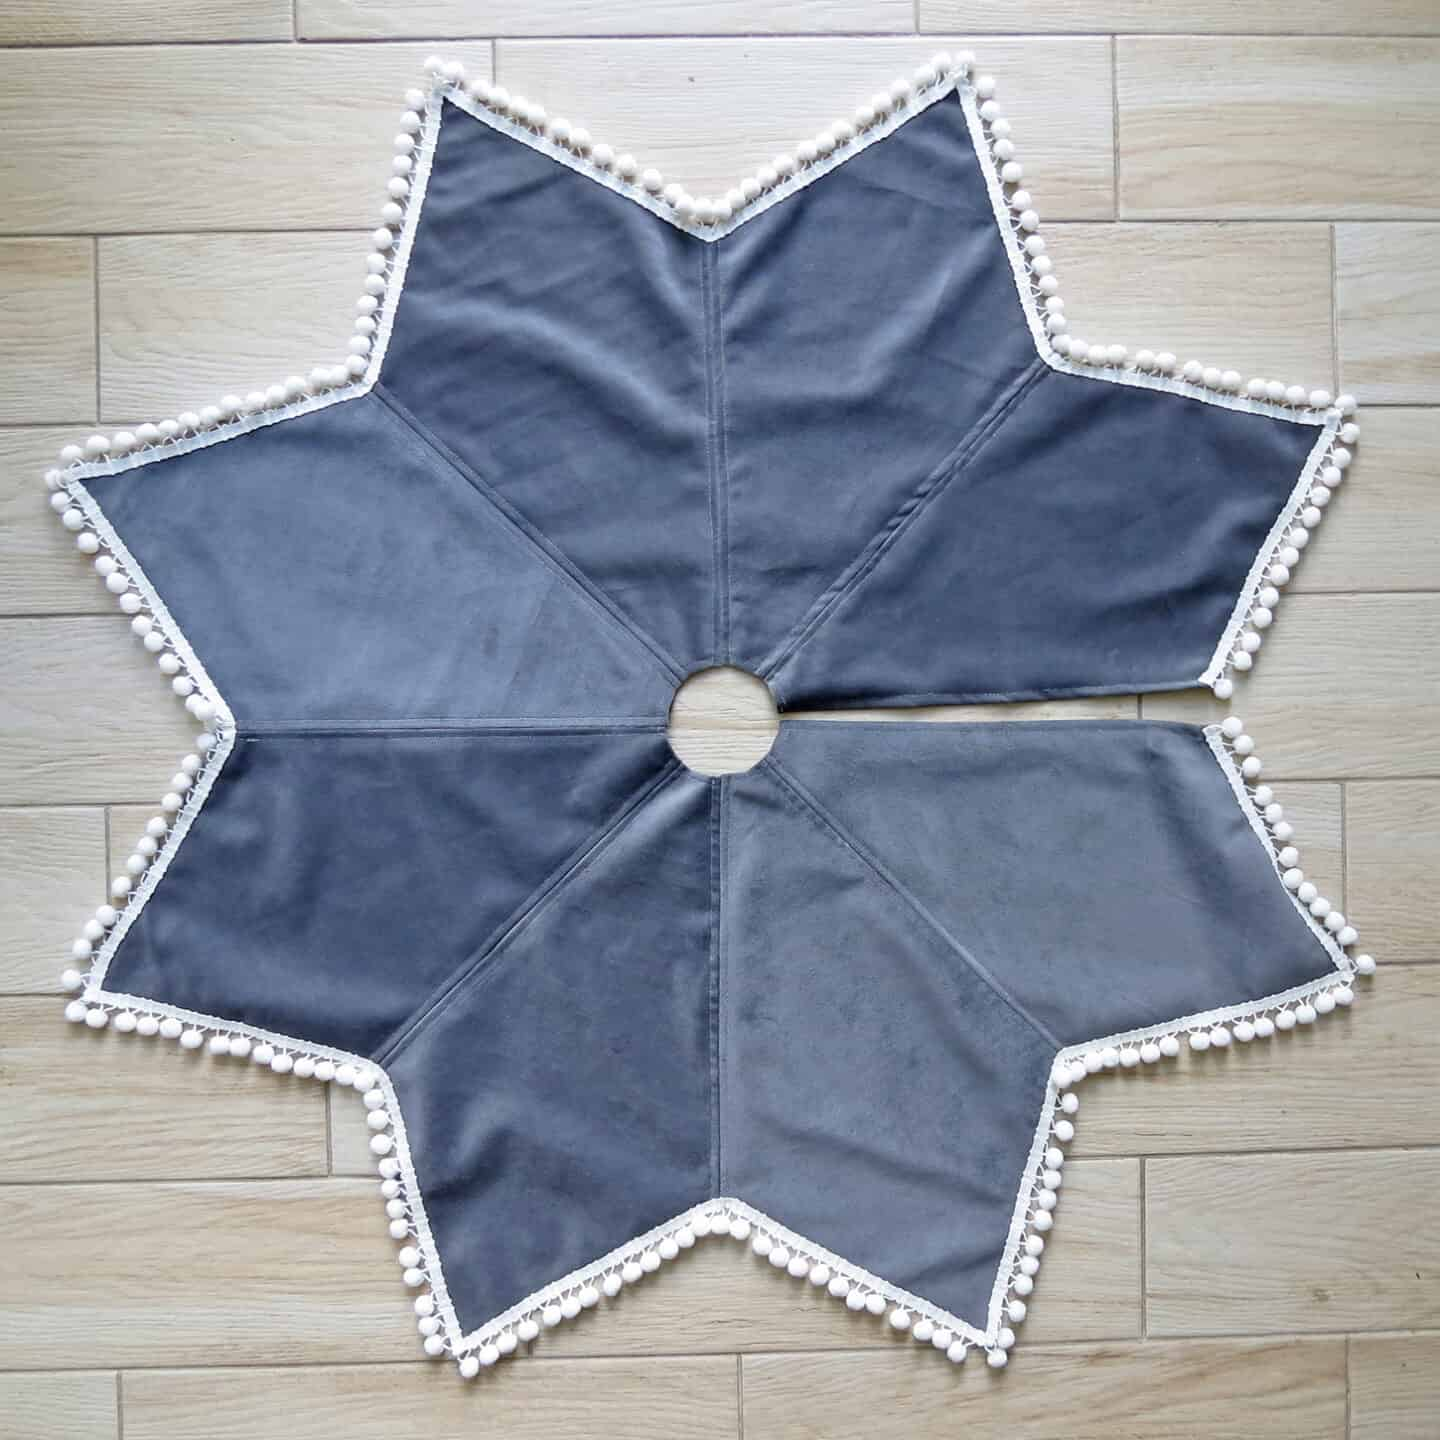 Sewing star-shaped tree skirt